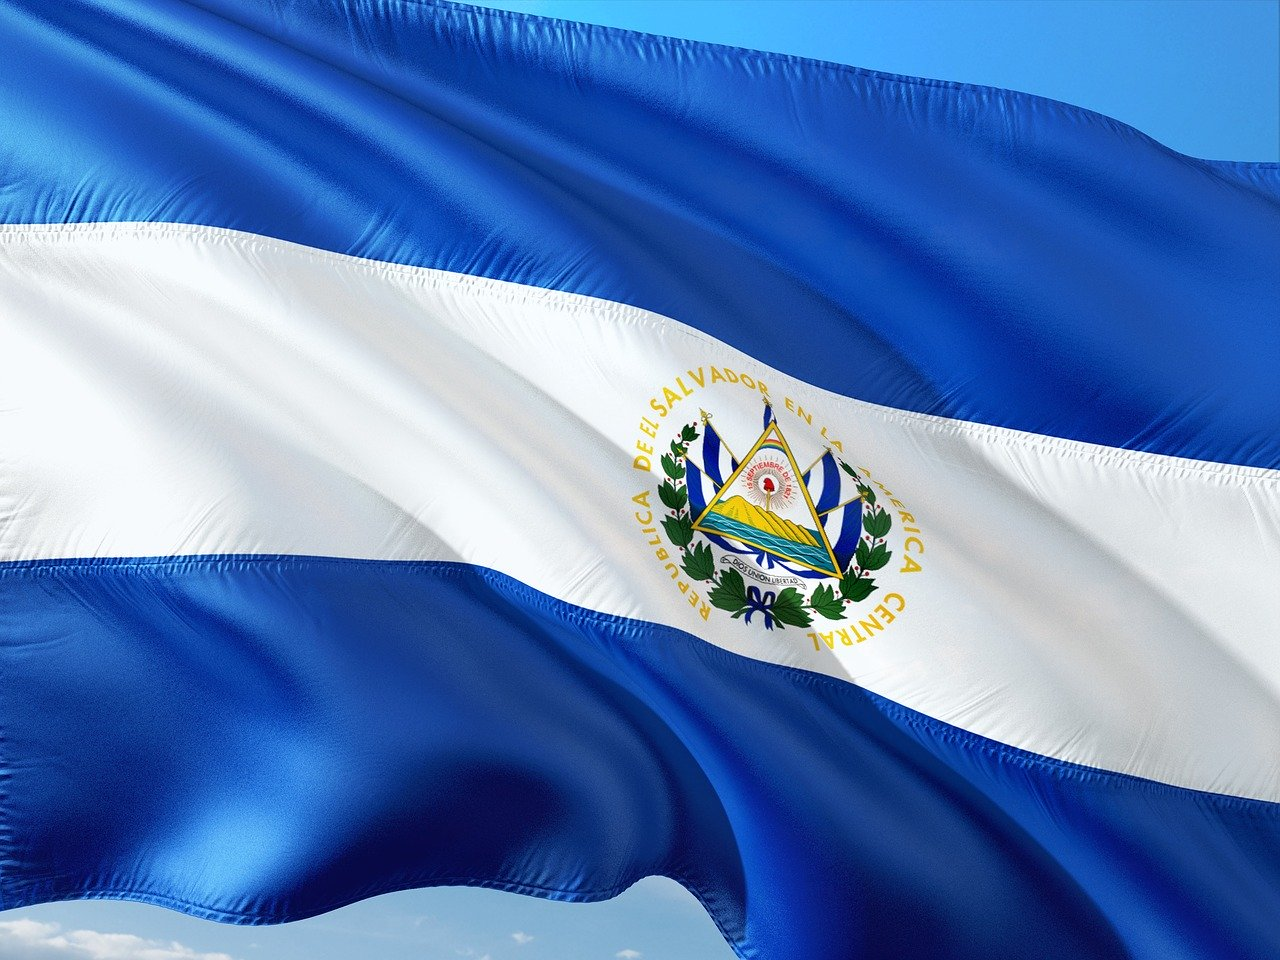 El Salvador extends COVID-19 state of emergency law despite human rights concerns